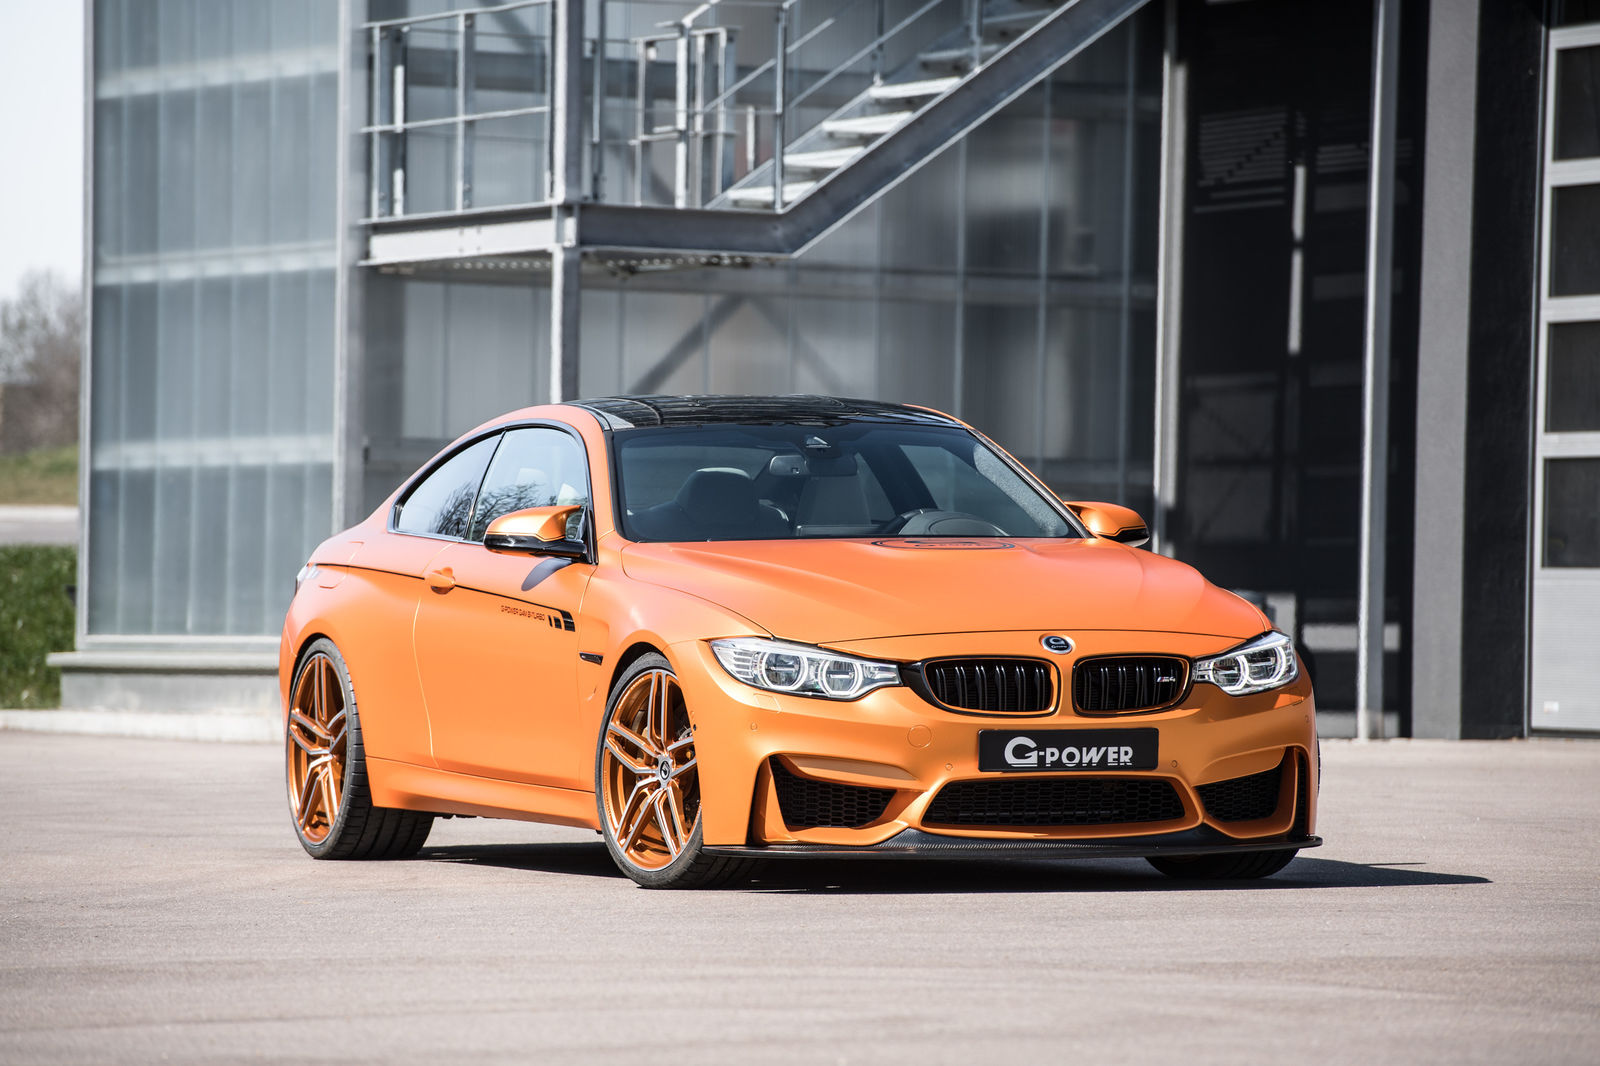 G-Power BMW M4 670 hp -1